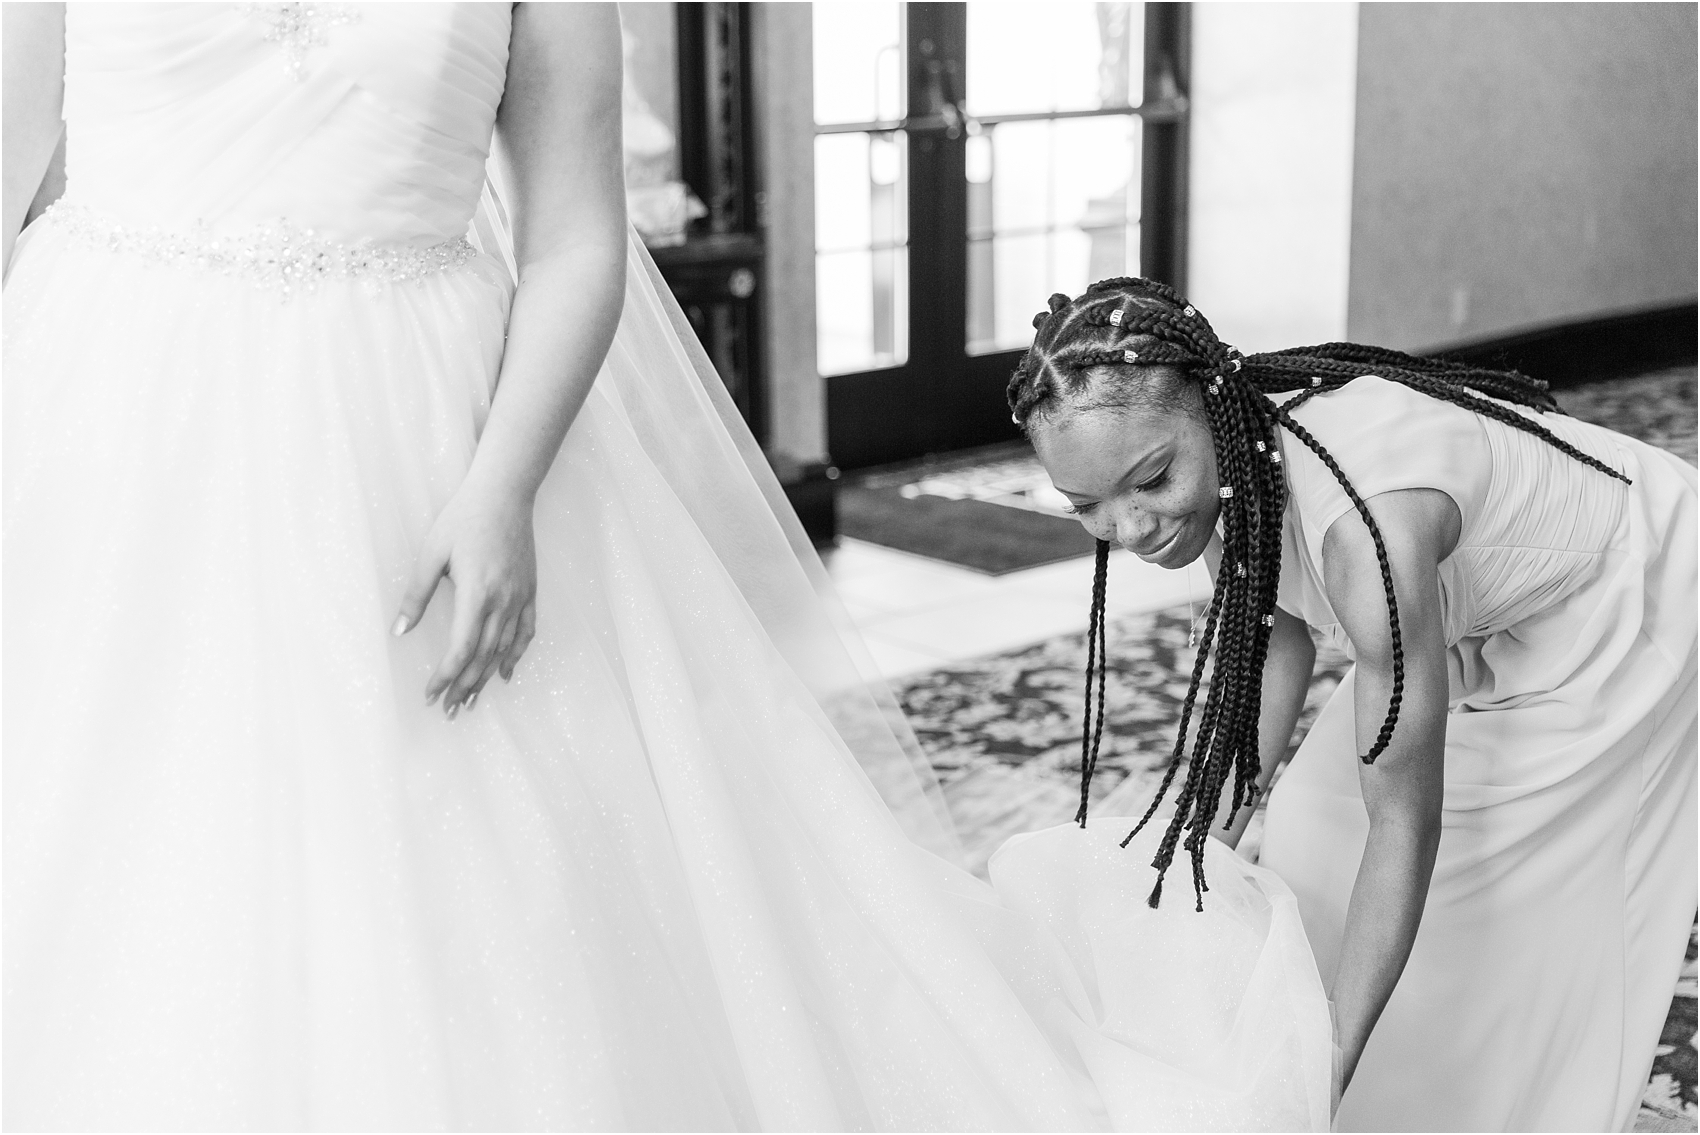 lord-of-the-rings-inspired-wedding-photos-at-crystal-gardens-in-howell-mi-by-courtney-carolyn-photography_0009.jpg